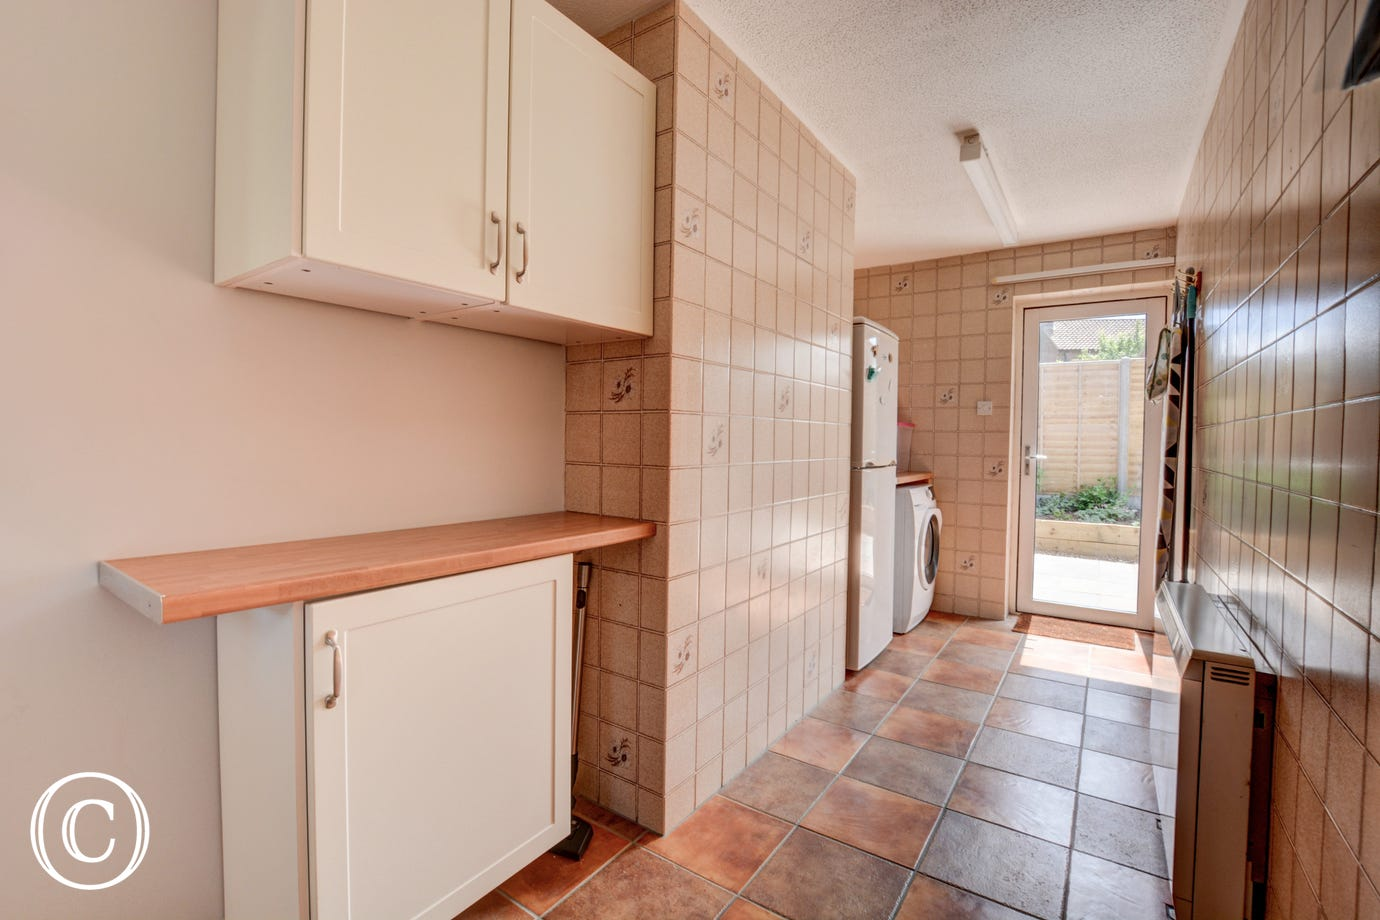 Utility Room with fridge/freezer and tumble dryer